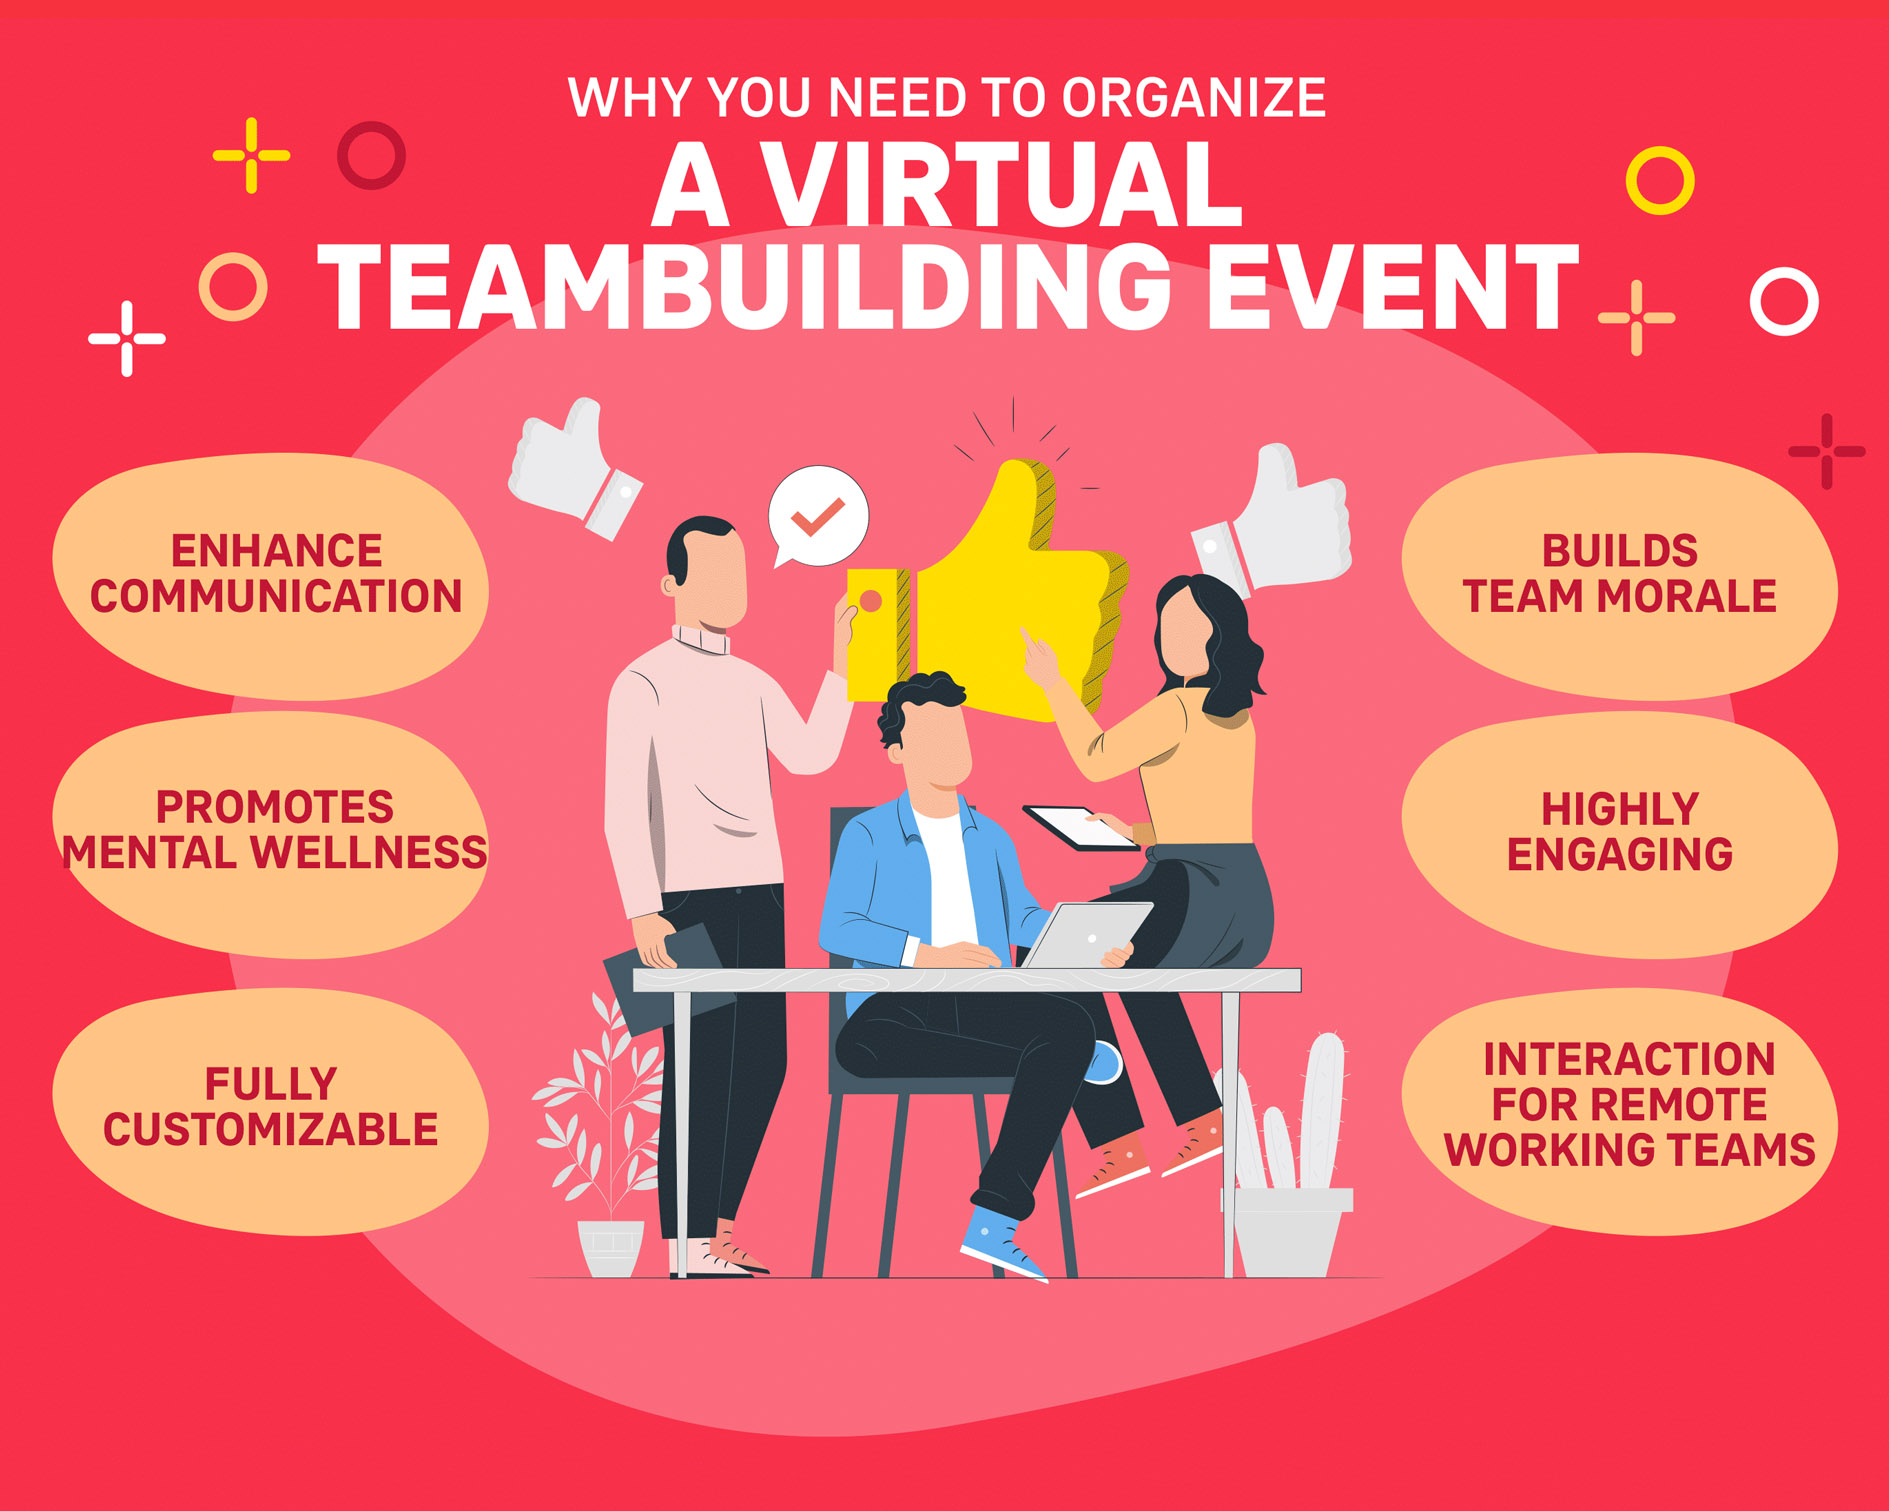 Why you need to organise a virtual teambuilding